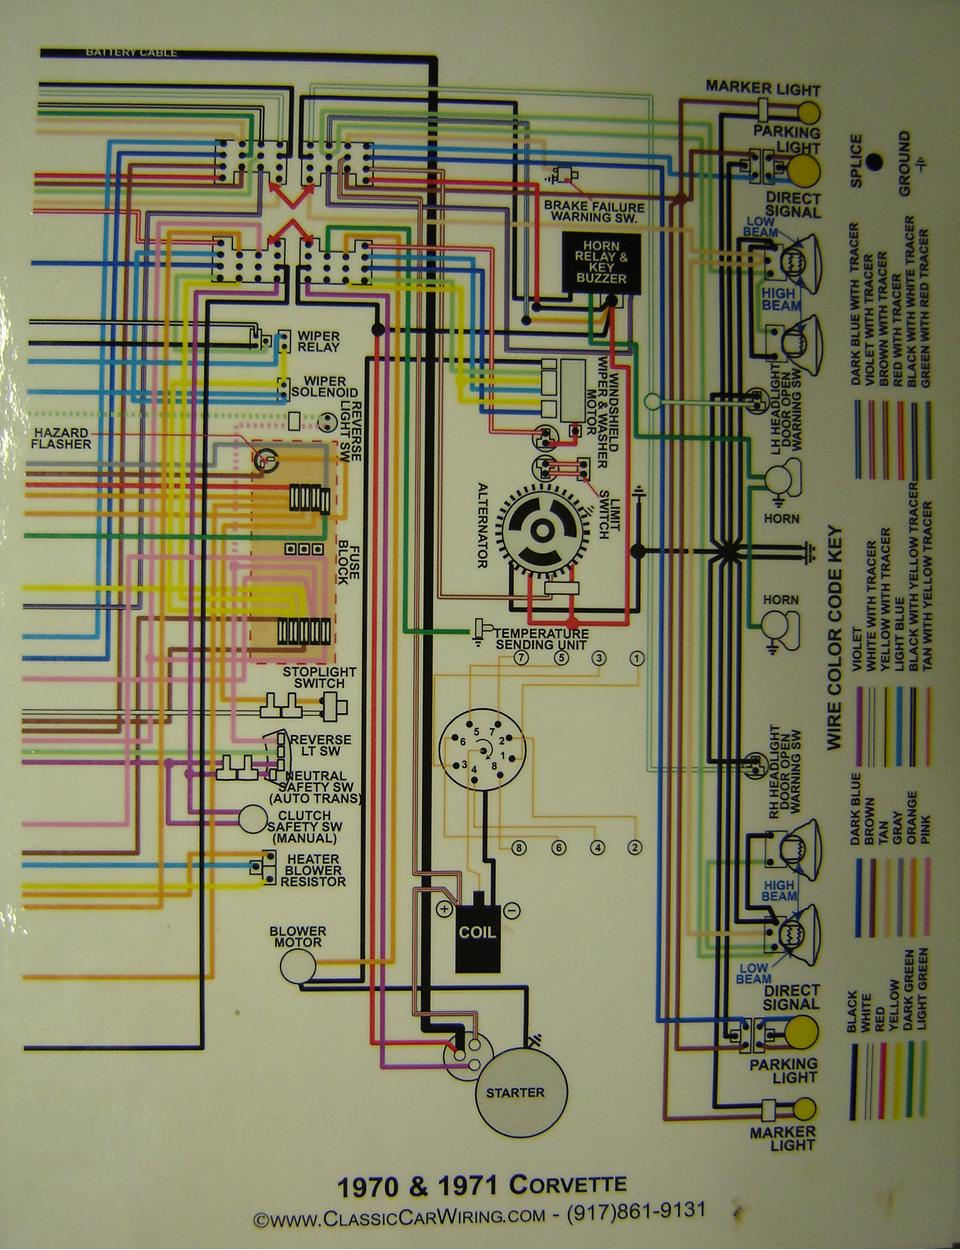 1970 71 corvette color wiring diagram B chevy diagrams 1989 corvette engine wiring harness at creativeand.co